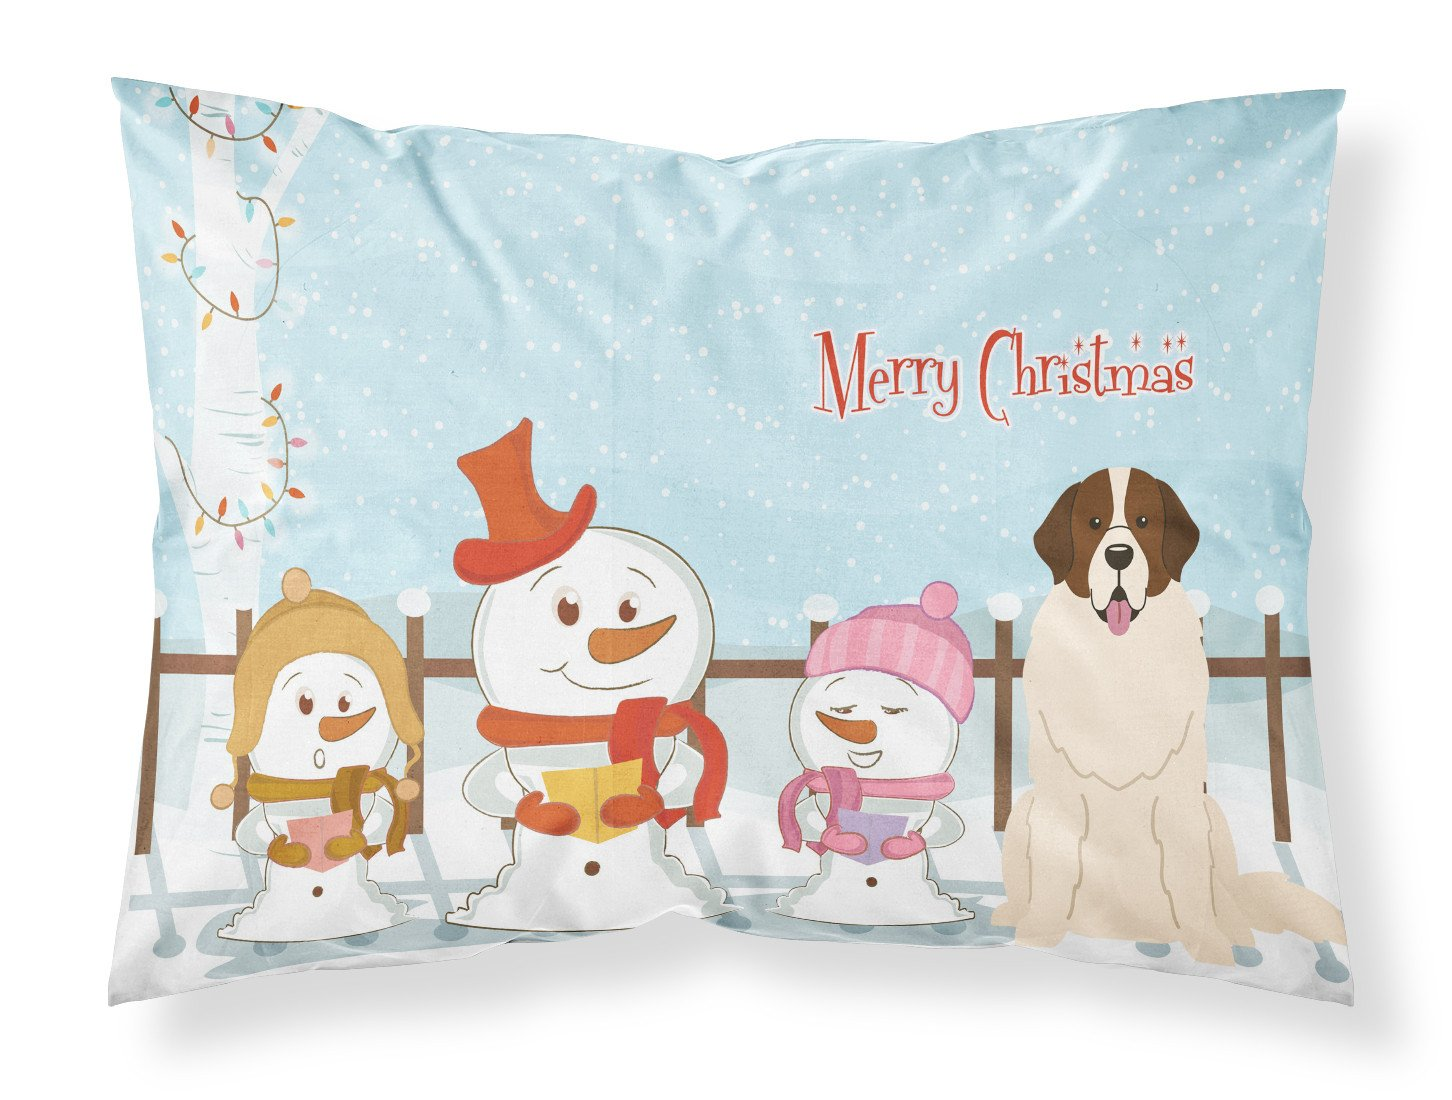 Merry Christmas Carolers Moscow Watchdog Fabric Standard Pillowcase BB2358PILLOWCASE by Caroline's Treasures